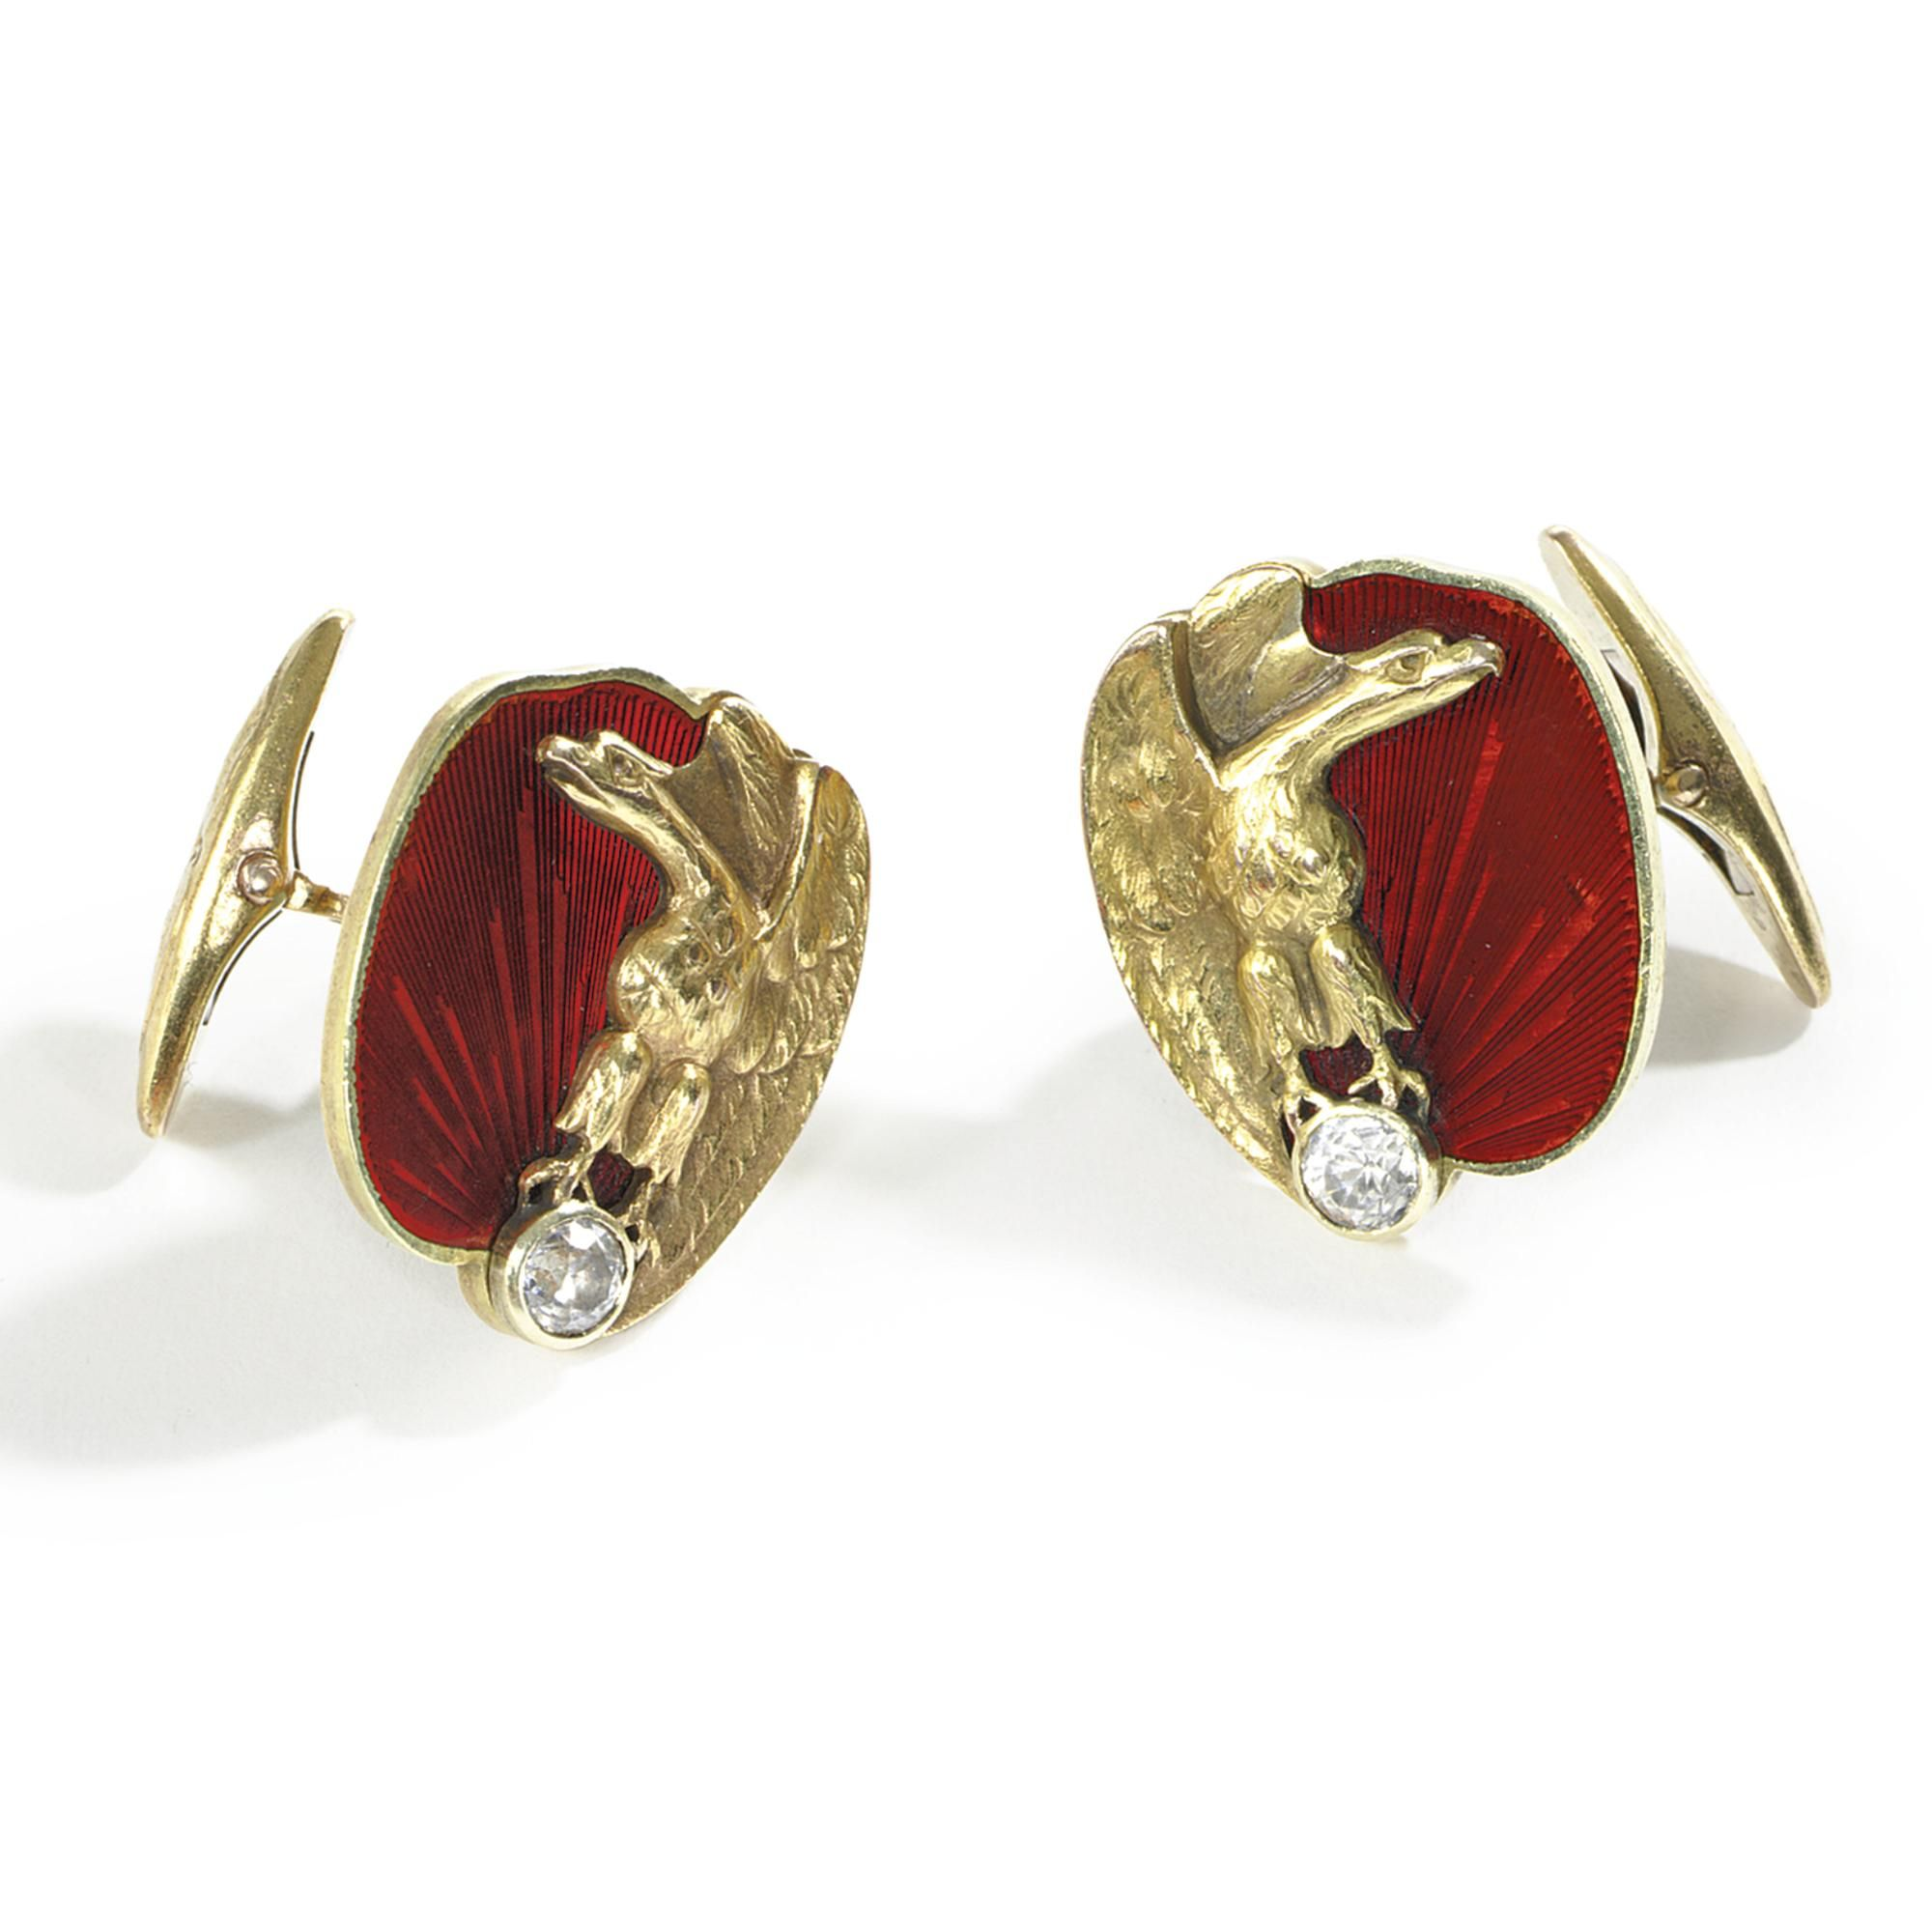 A PAIR OF FABERGÉ GOLD, ENAMEL, AND JEWELED CUFFLINKS, WORKMASTER KNUT OSKAR PIHL, MOSCOW, CIRCA 1890 enameled translucent strawberry red over a guilloché ground, each disk applied with a gold eagle grasping a diamond in its claws, the bars chased with two leaves marked with initials of workmaster and 56 standard Width 7/8 in. 2.2 cm Estimate 8,000 — 12,000 USD LOT SOLD. 27,500 USD